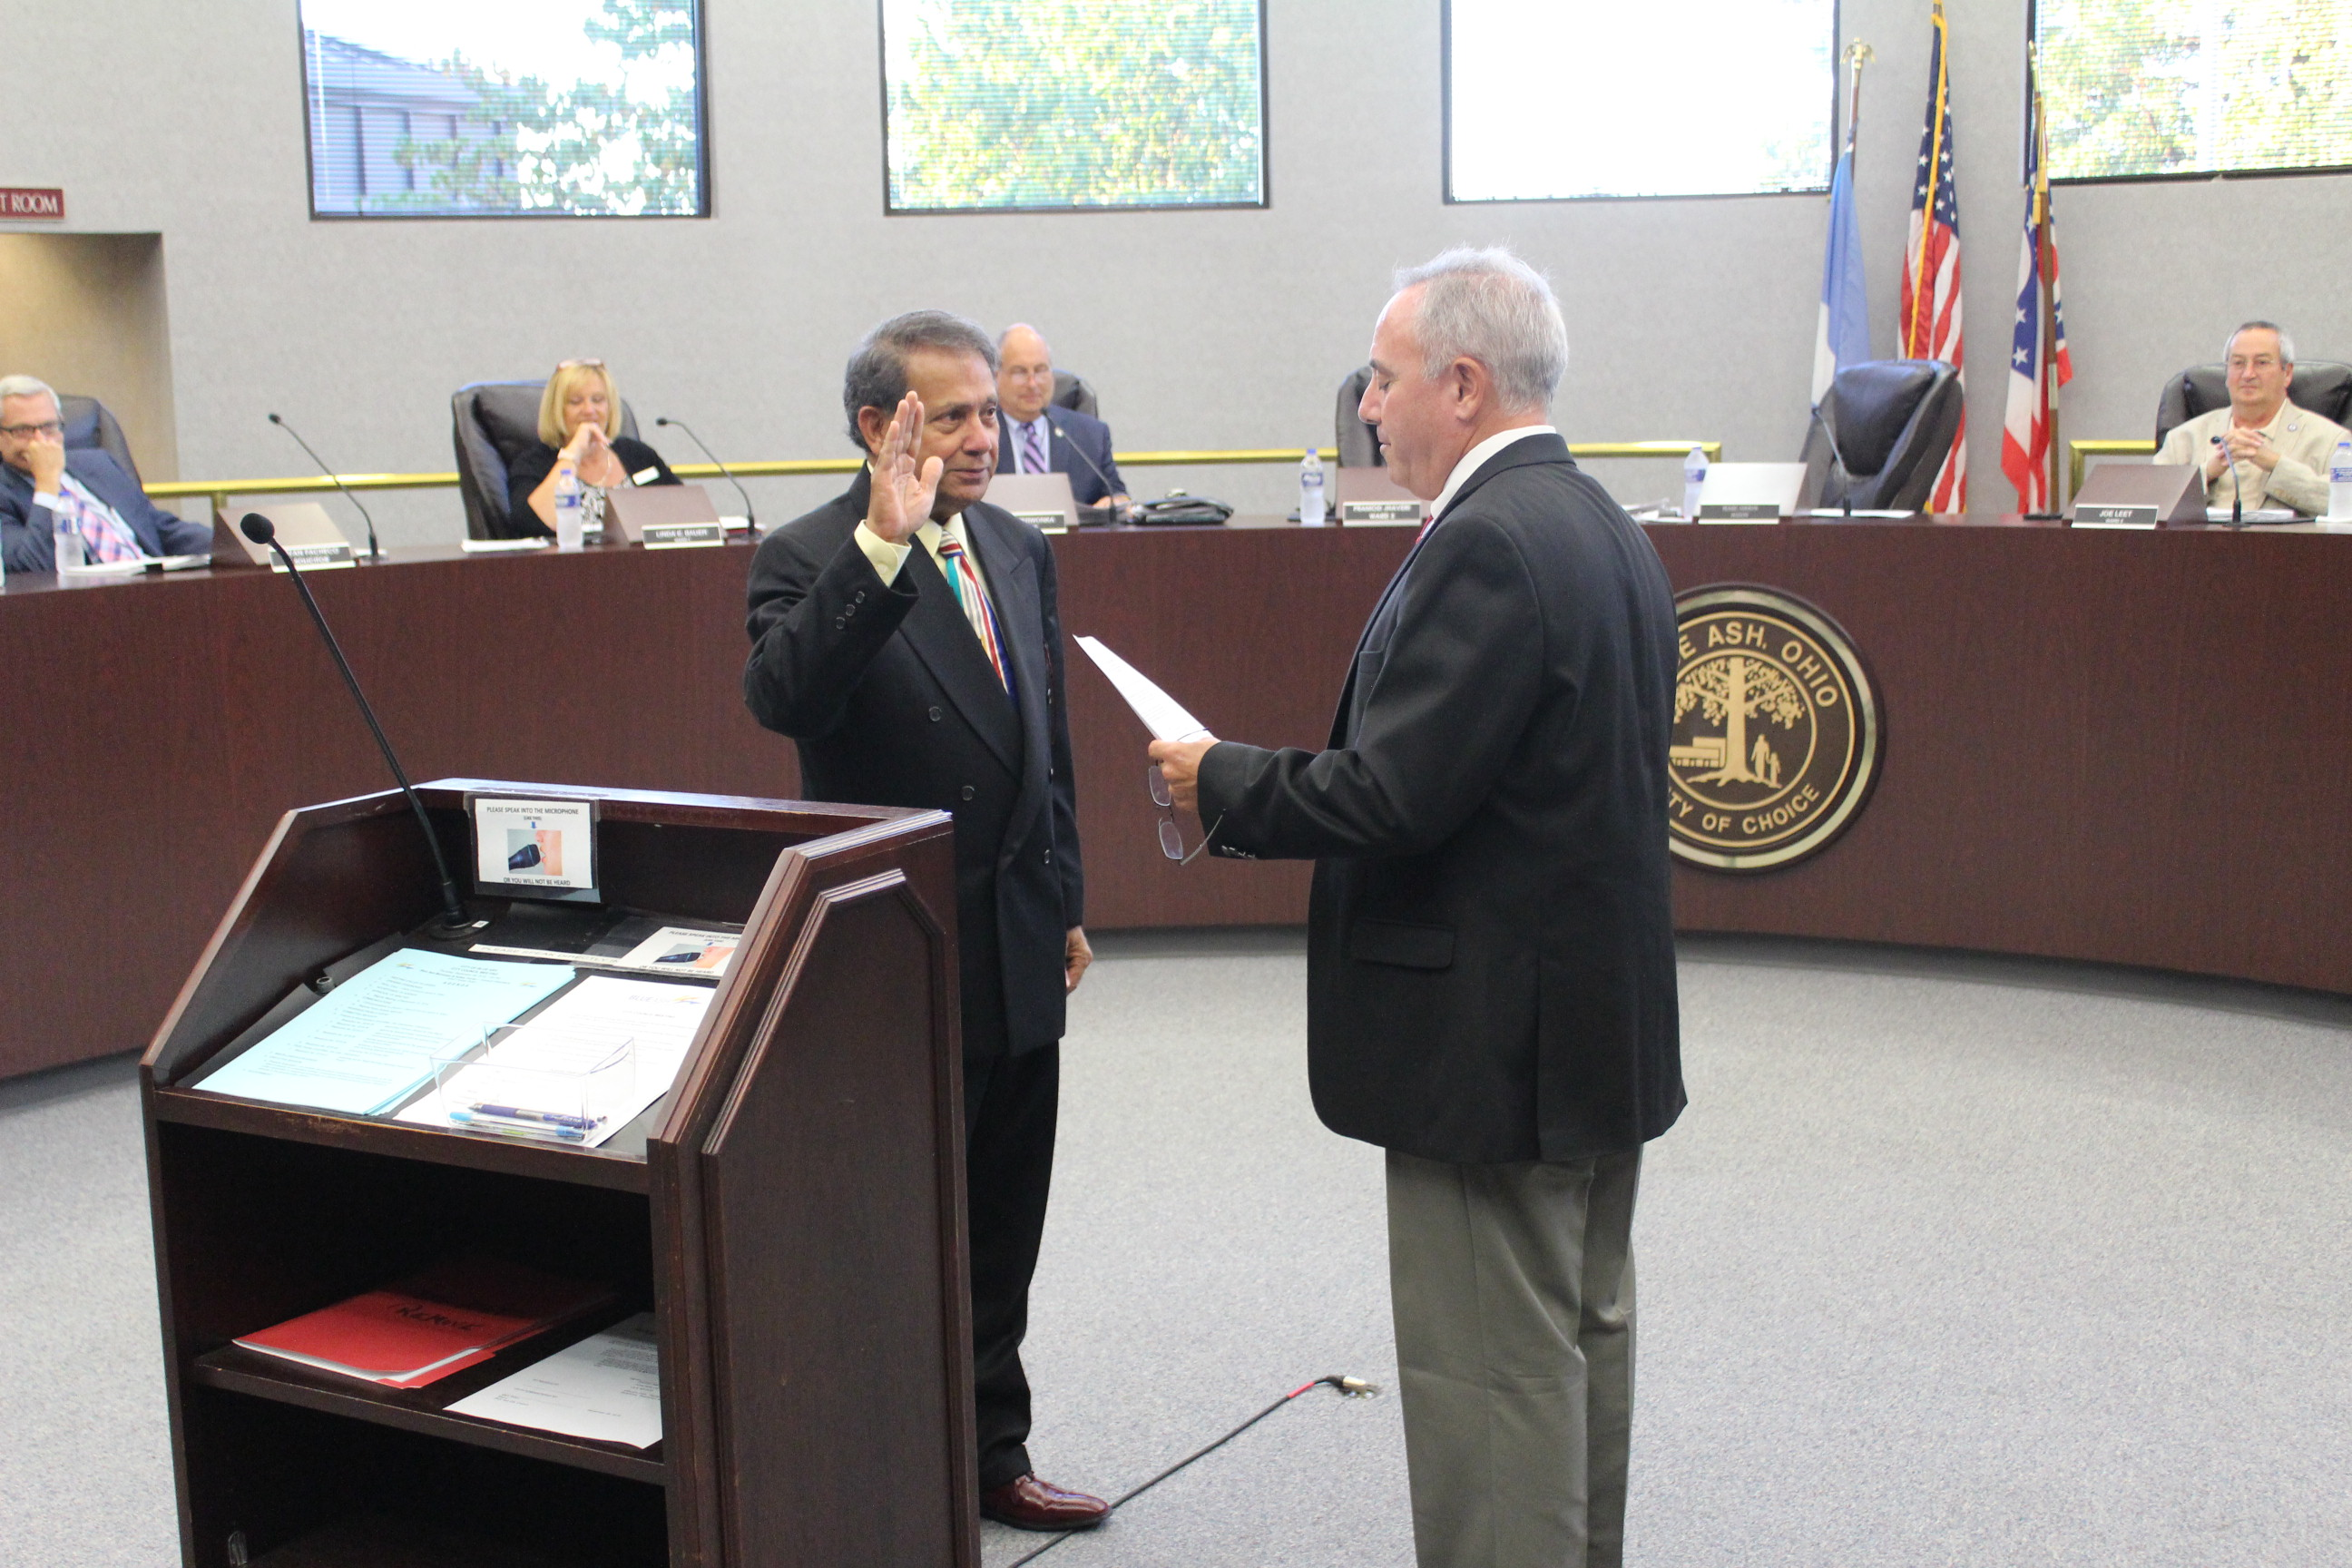 Mayor Sirkin swearing in Vice Mayor Jhaveri at the September 26 City Council meeting